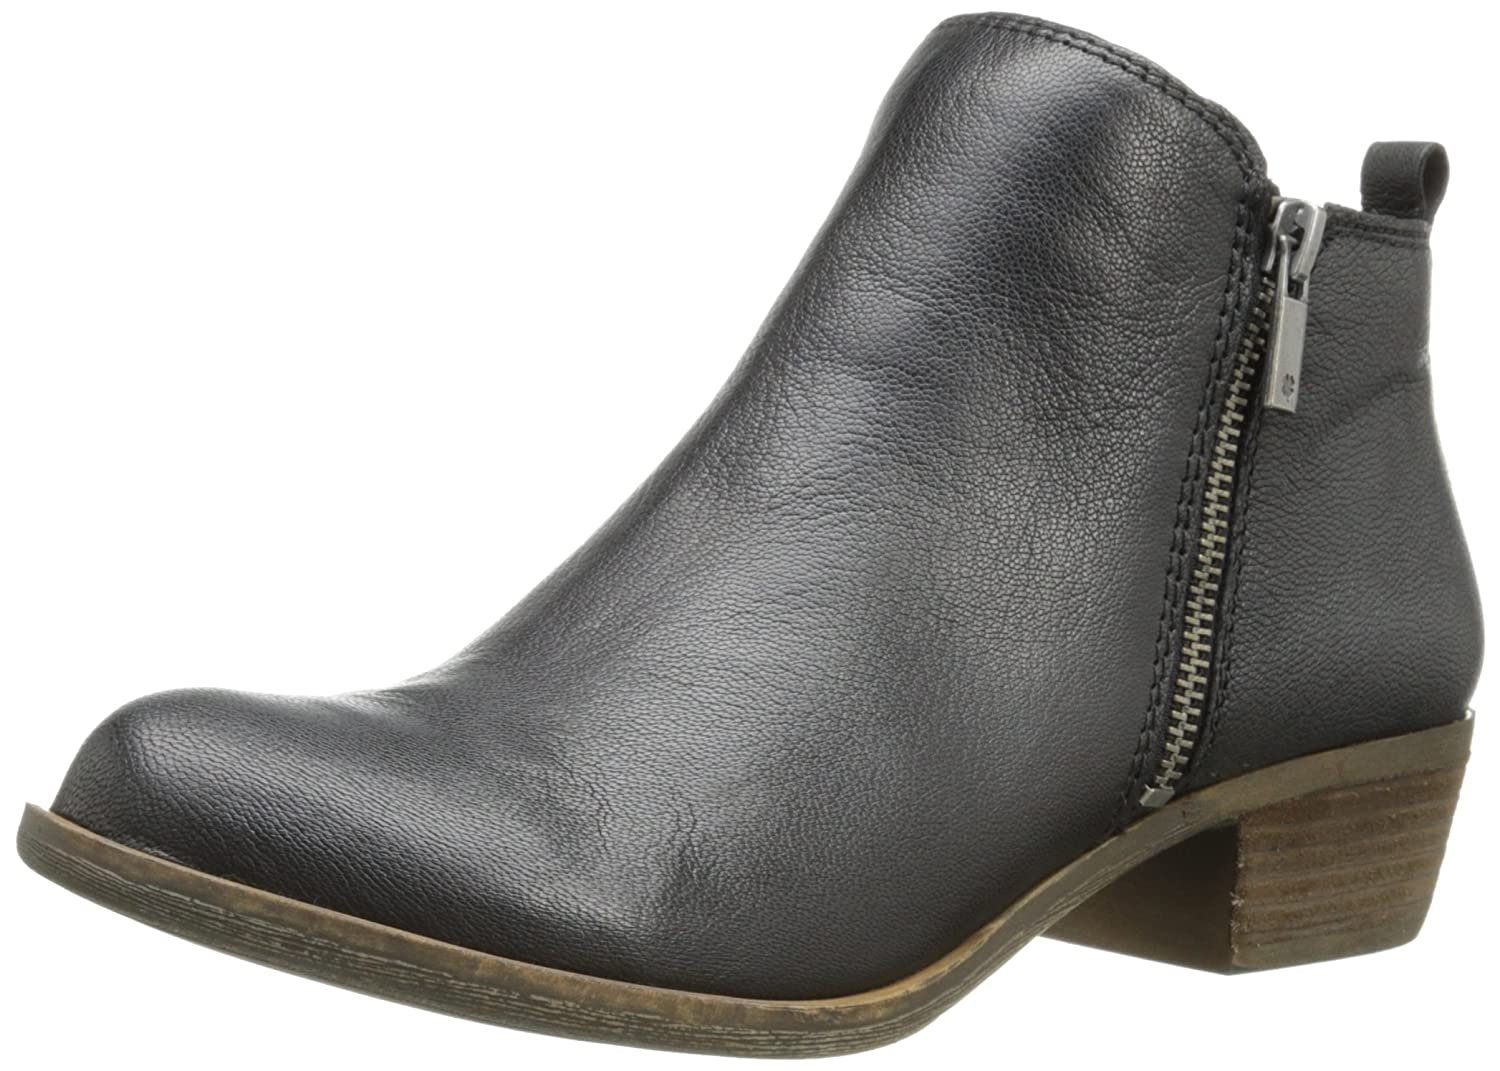 Lucky Brand Women's Basel Boot B015RKWNWA 8.5 C/D US|Black 03